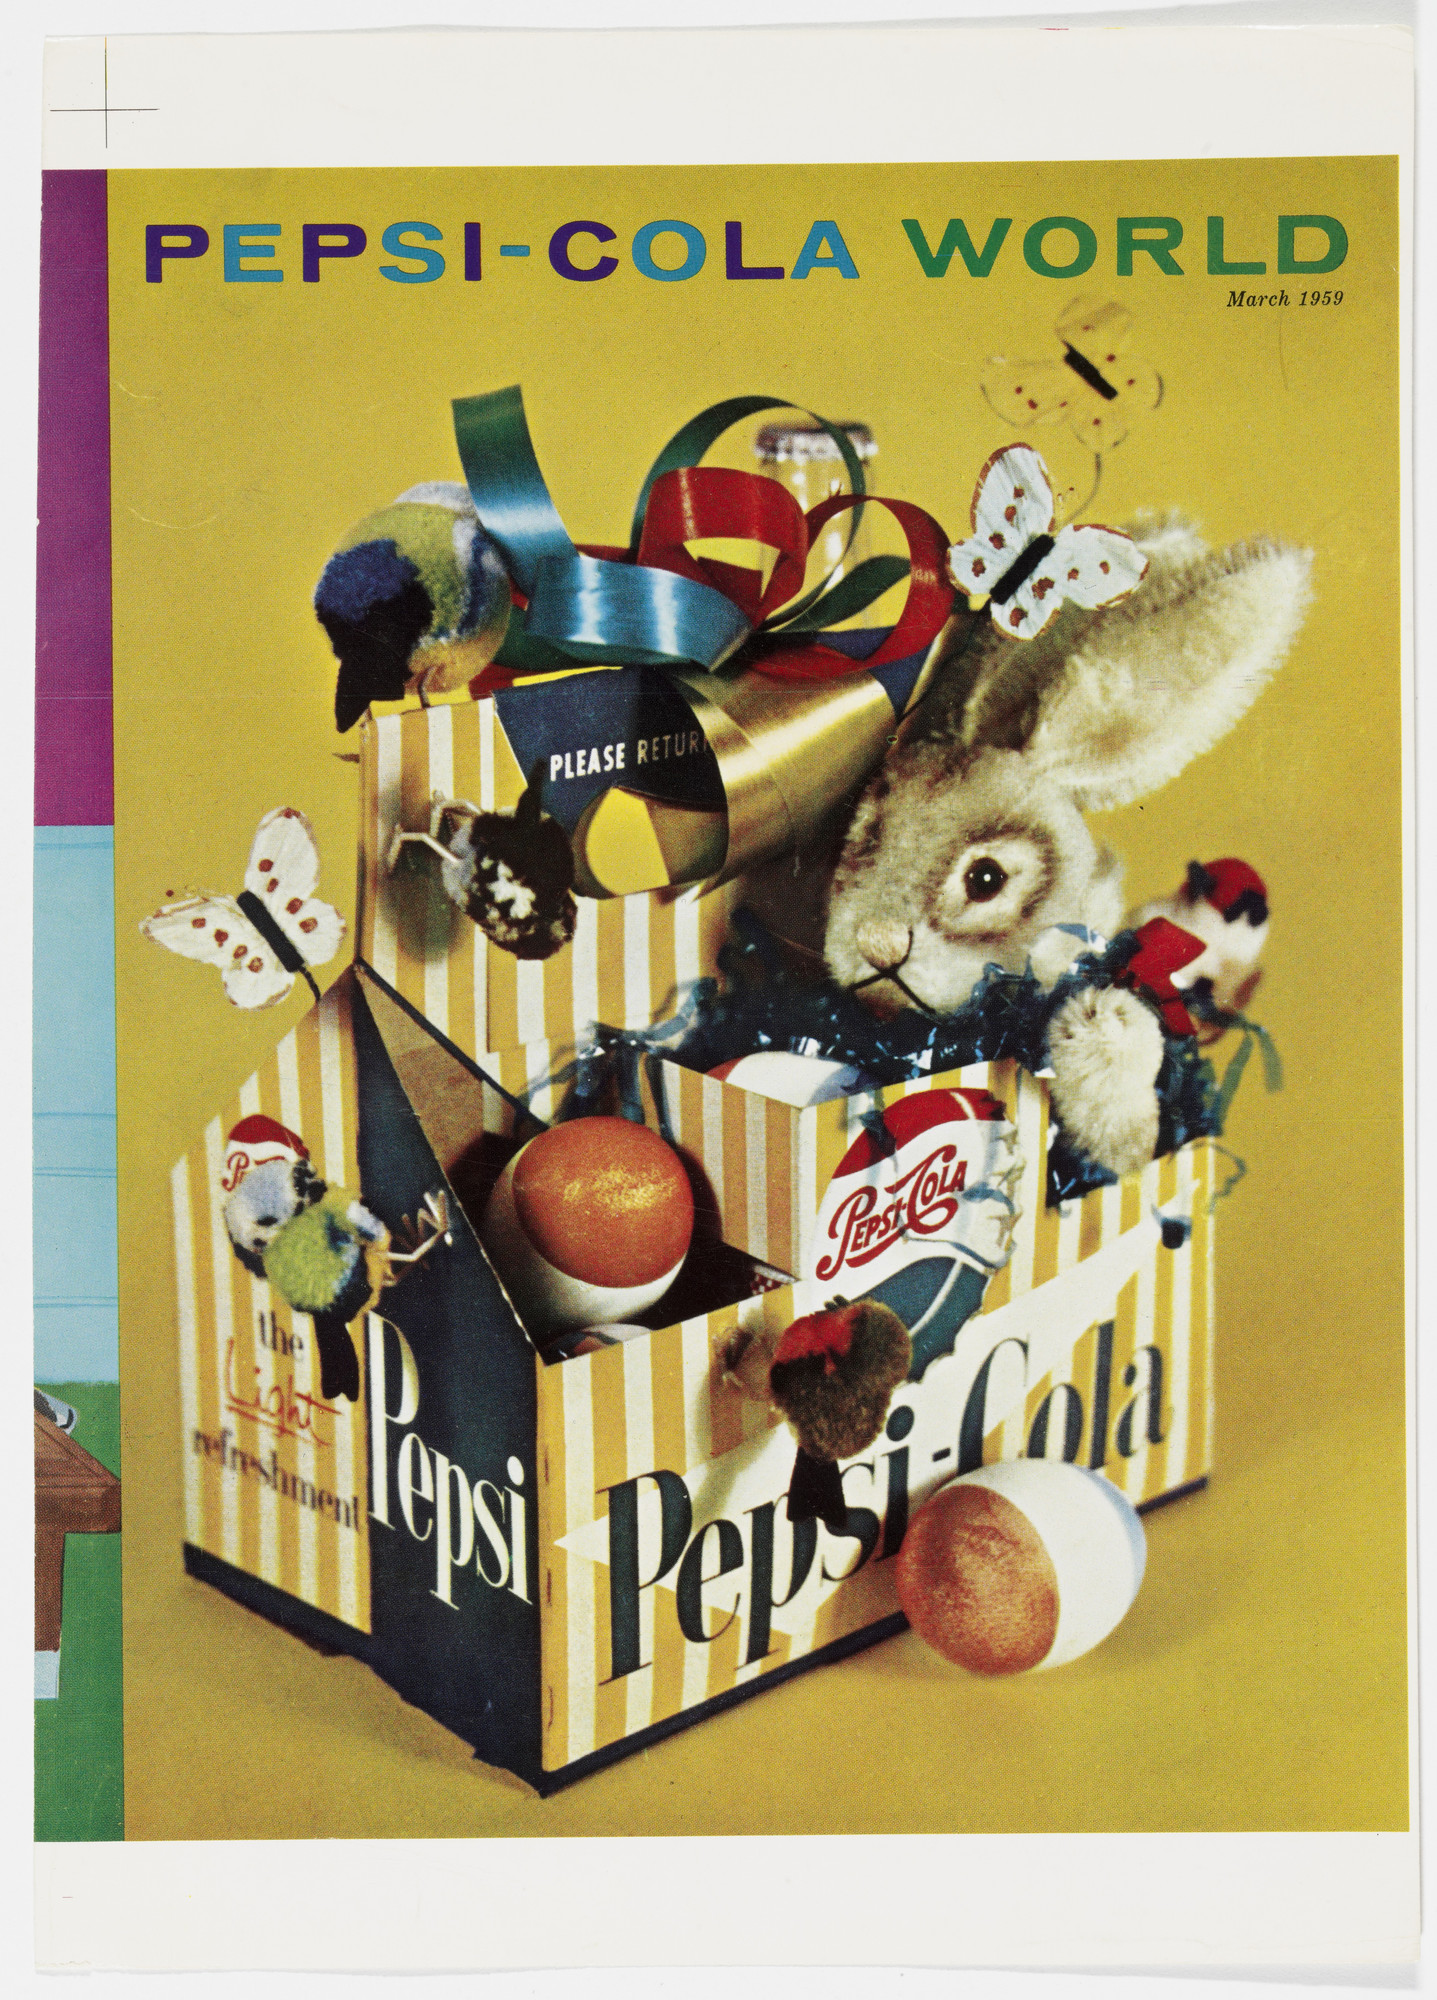 Robert Brownjohn, Ivan Chermayeff, Thomas Geismar. Artist's Proof for the cover of Pepsi-Cola World, March, 1959. 1959